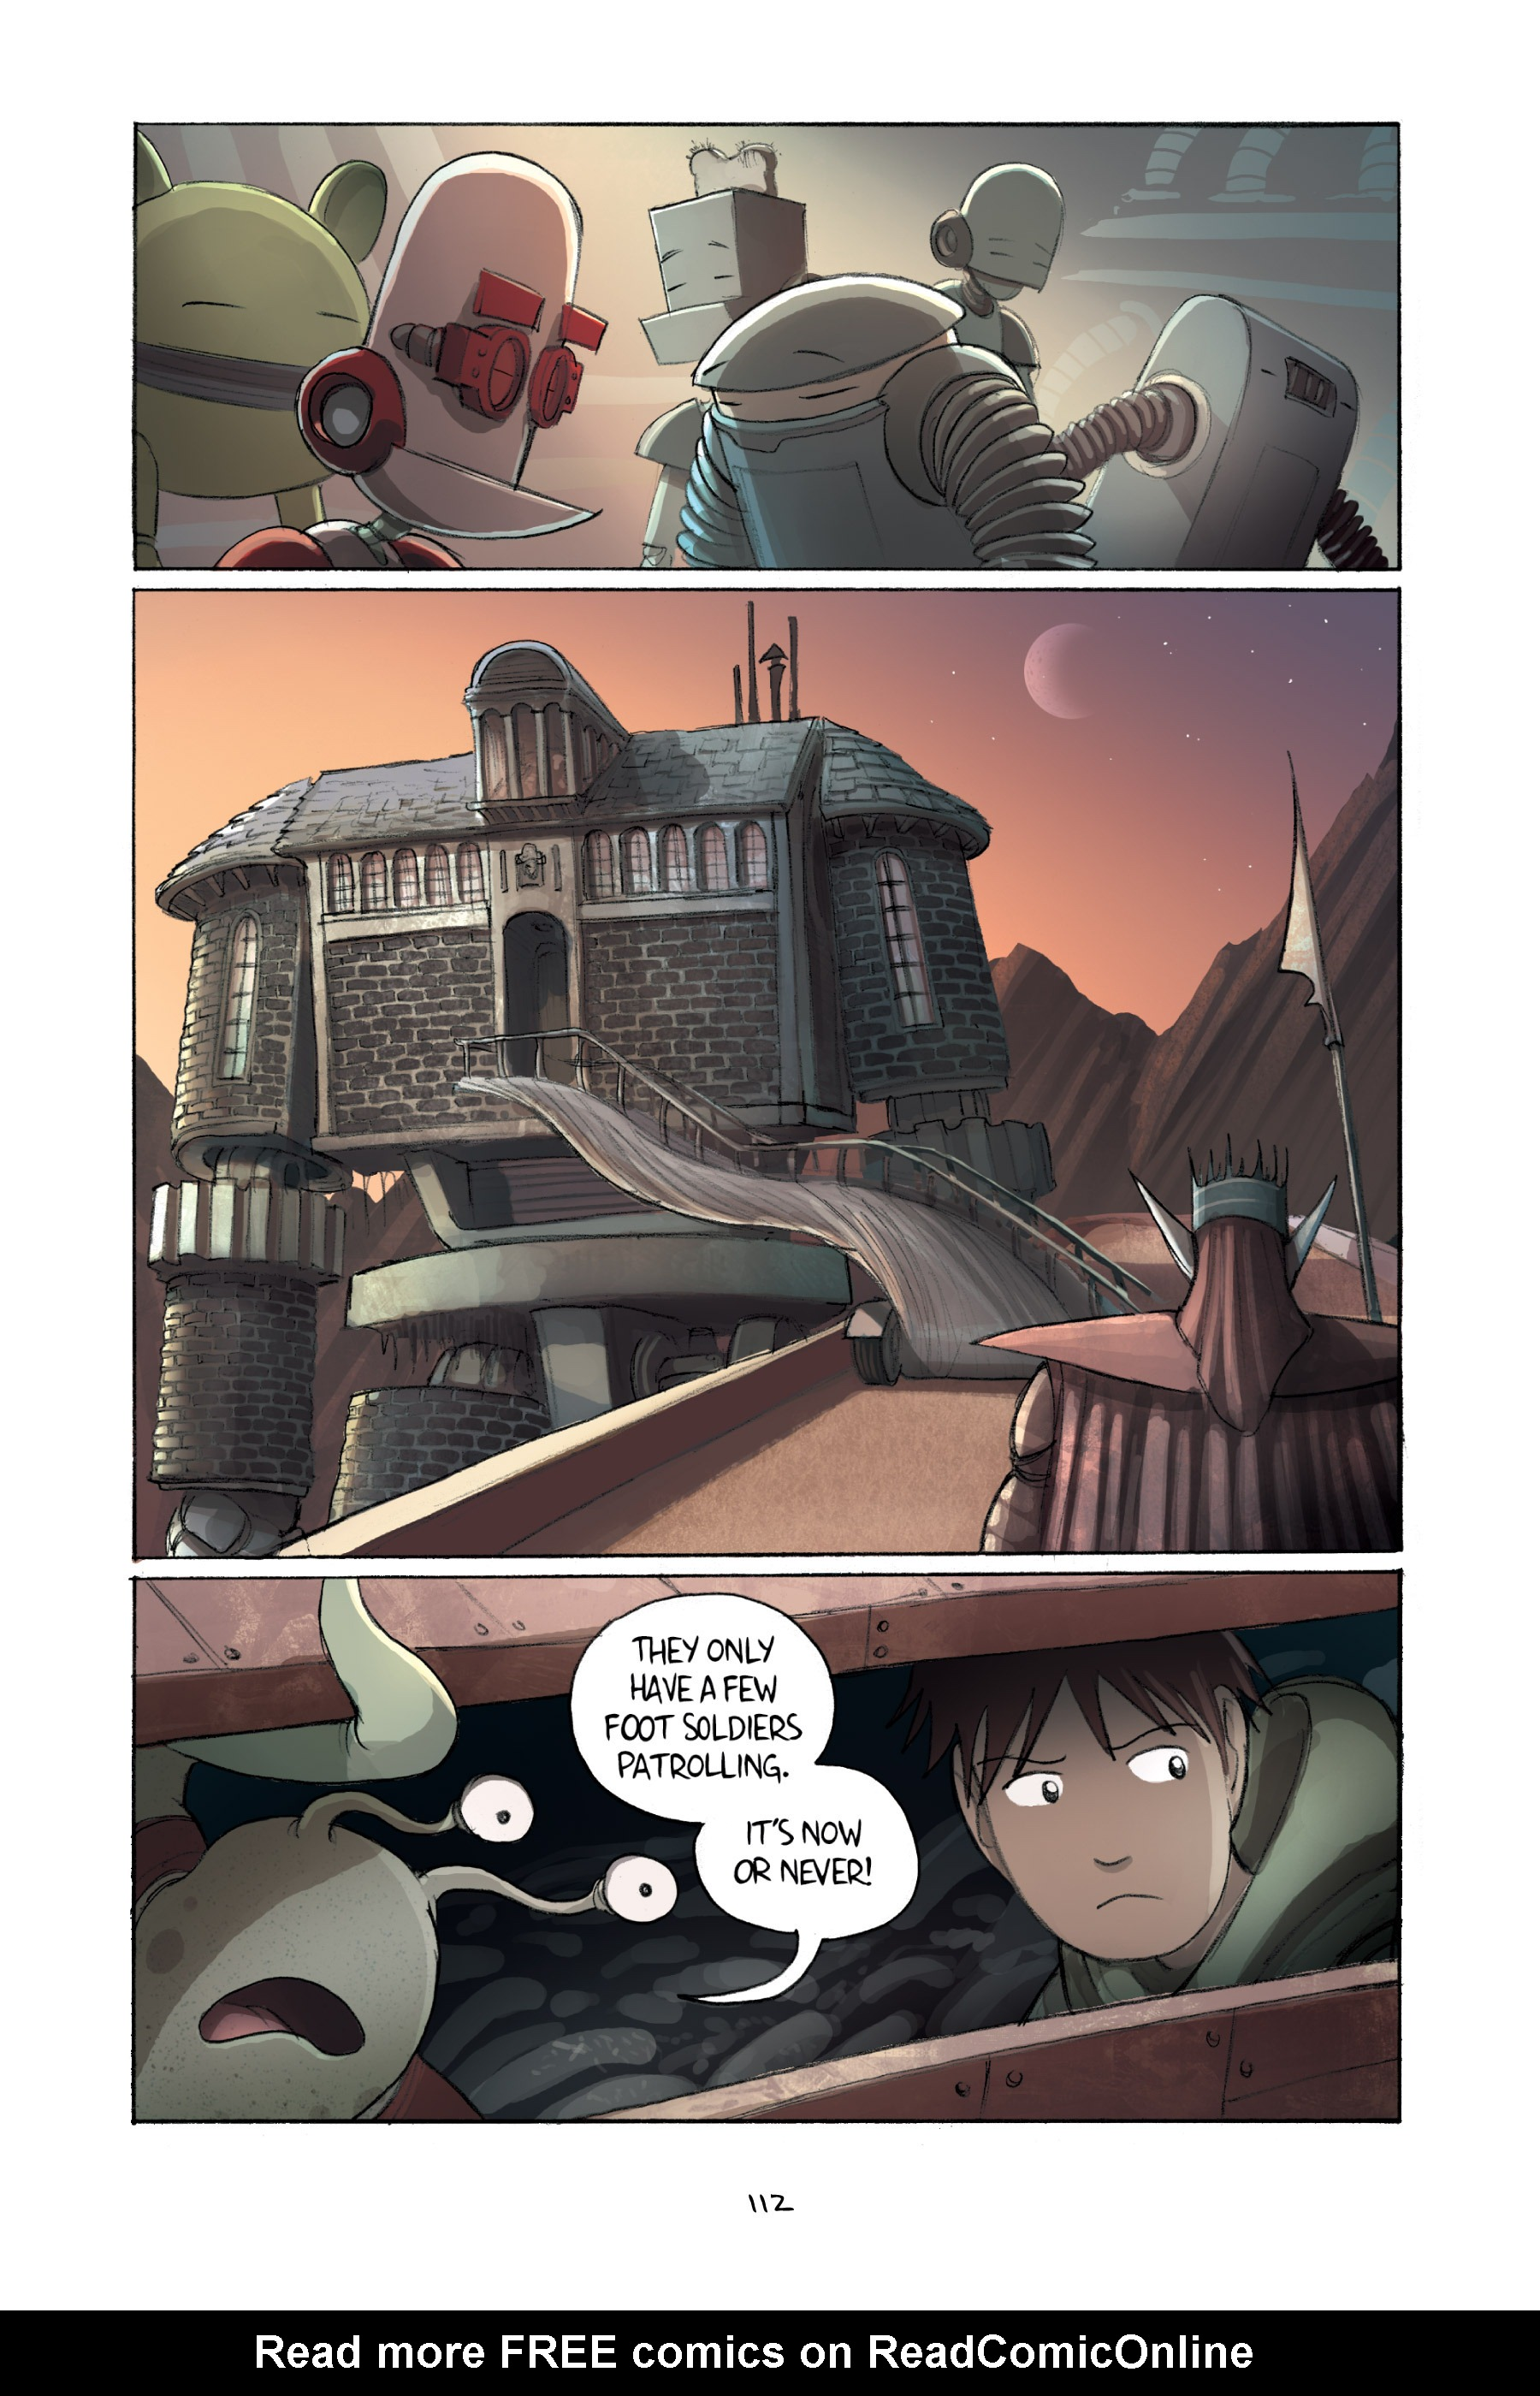 Read online Amulet comic -  Issue #2 - 112